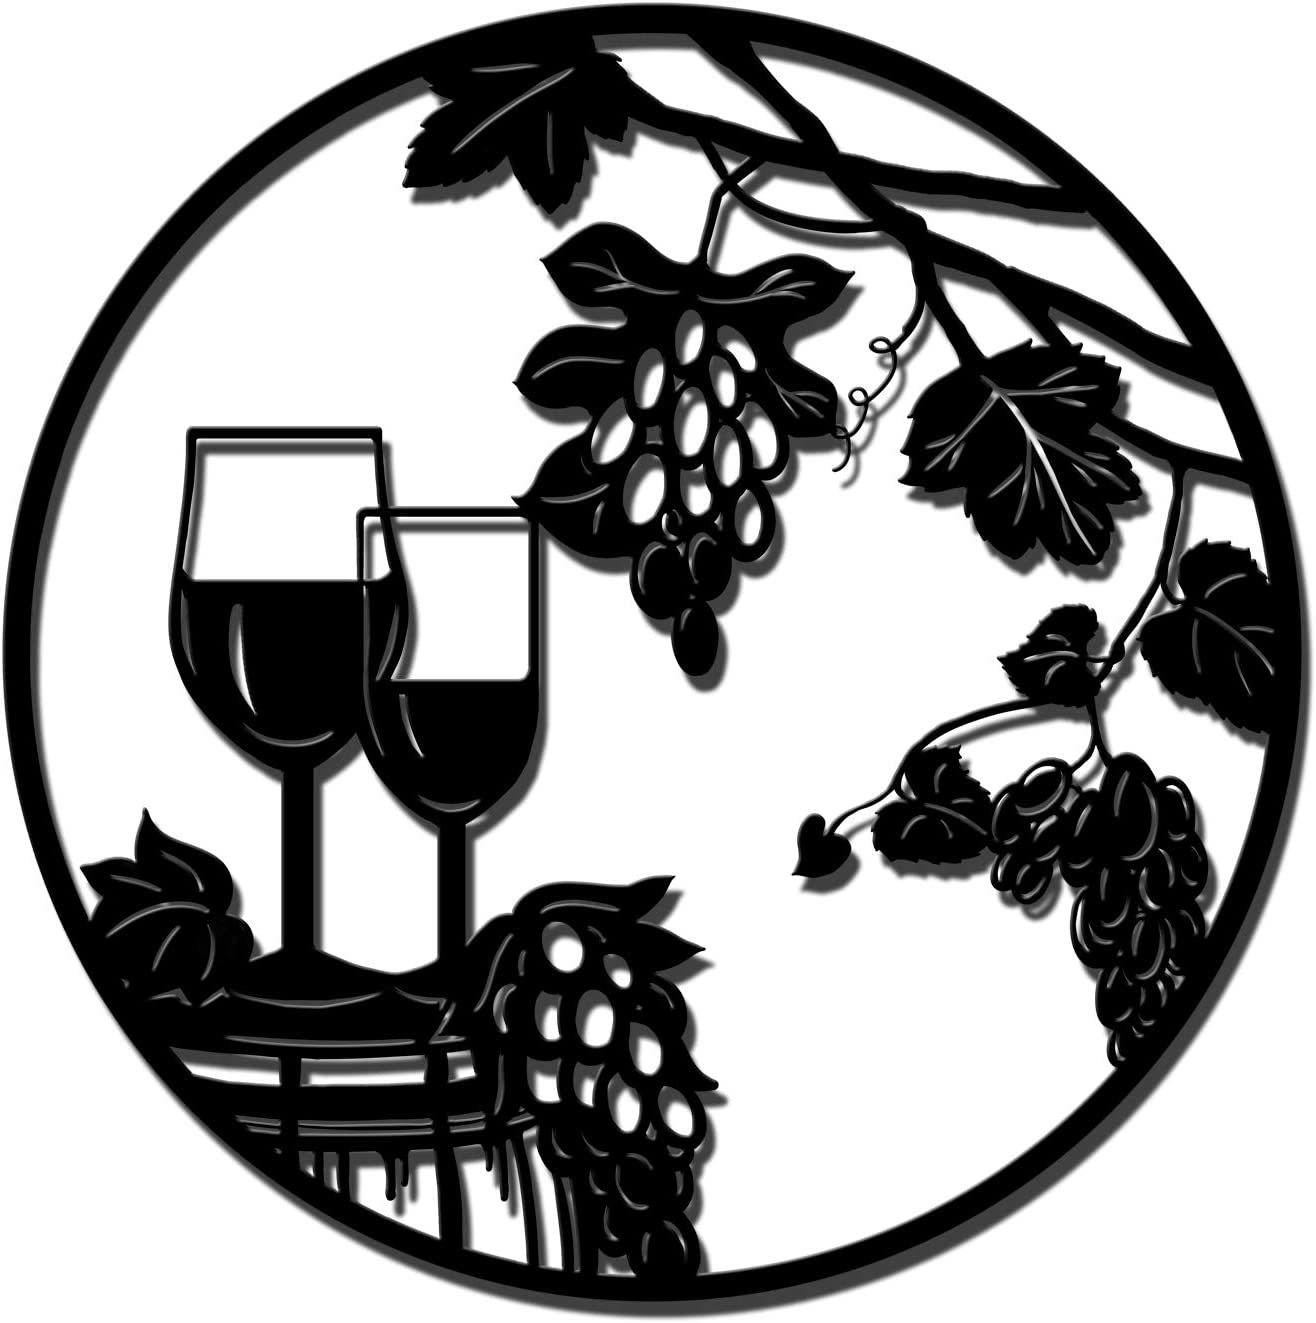 Rustic Wall Decor Metal Wine Grapes Wall Sculpture Black Modern Artwork for Chateau Farmhouse Kitchen Home Decorations Easy to Hang on